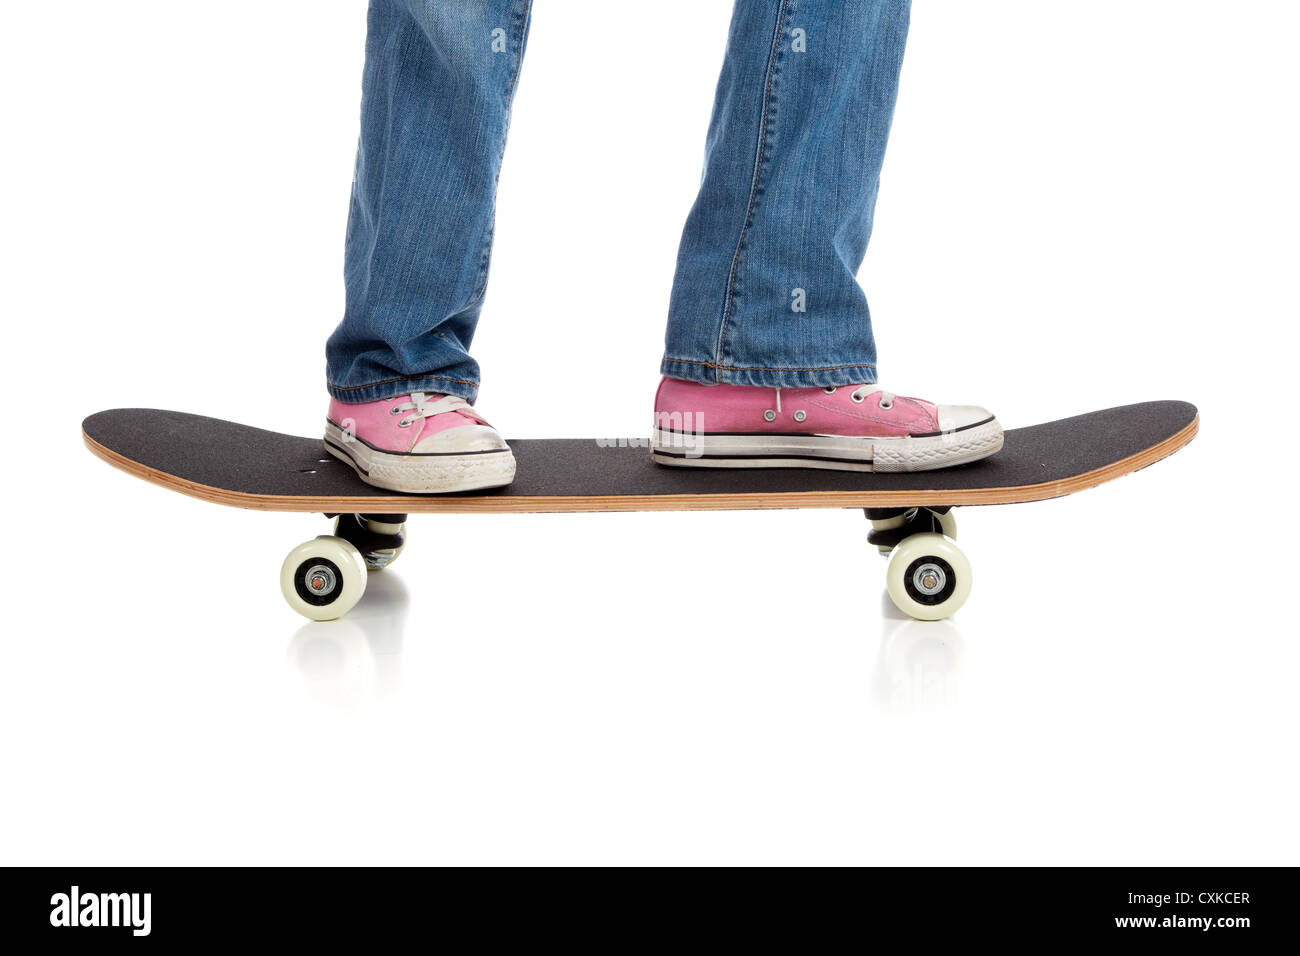 Pink sneakers on a skate board - Stock Image